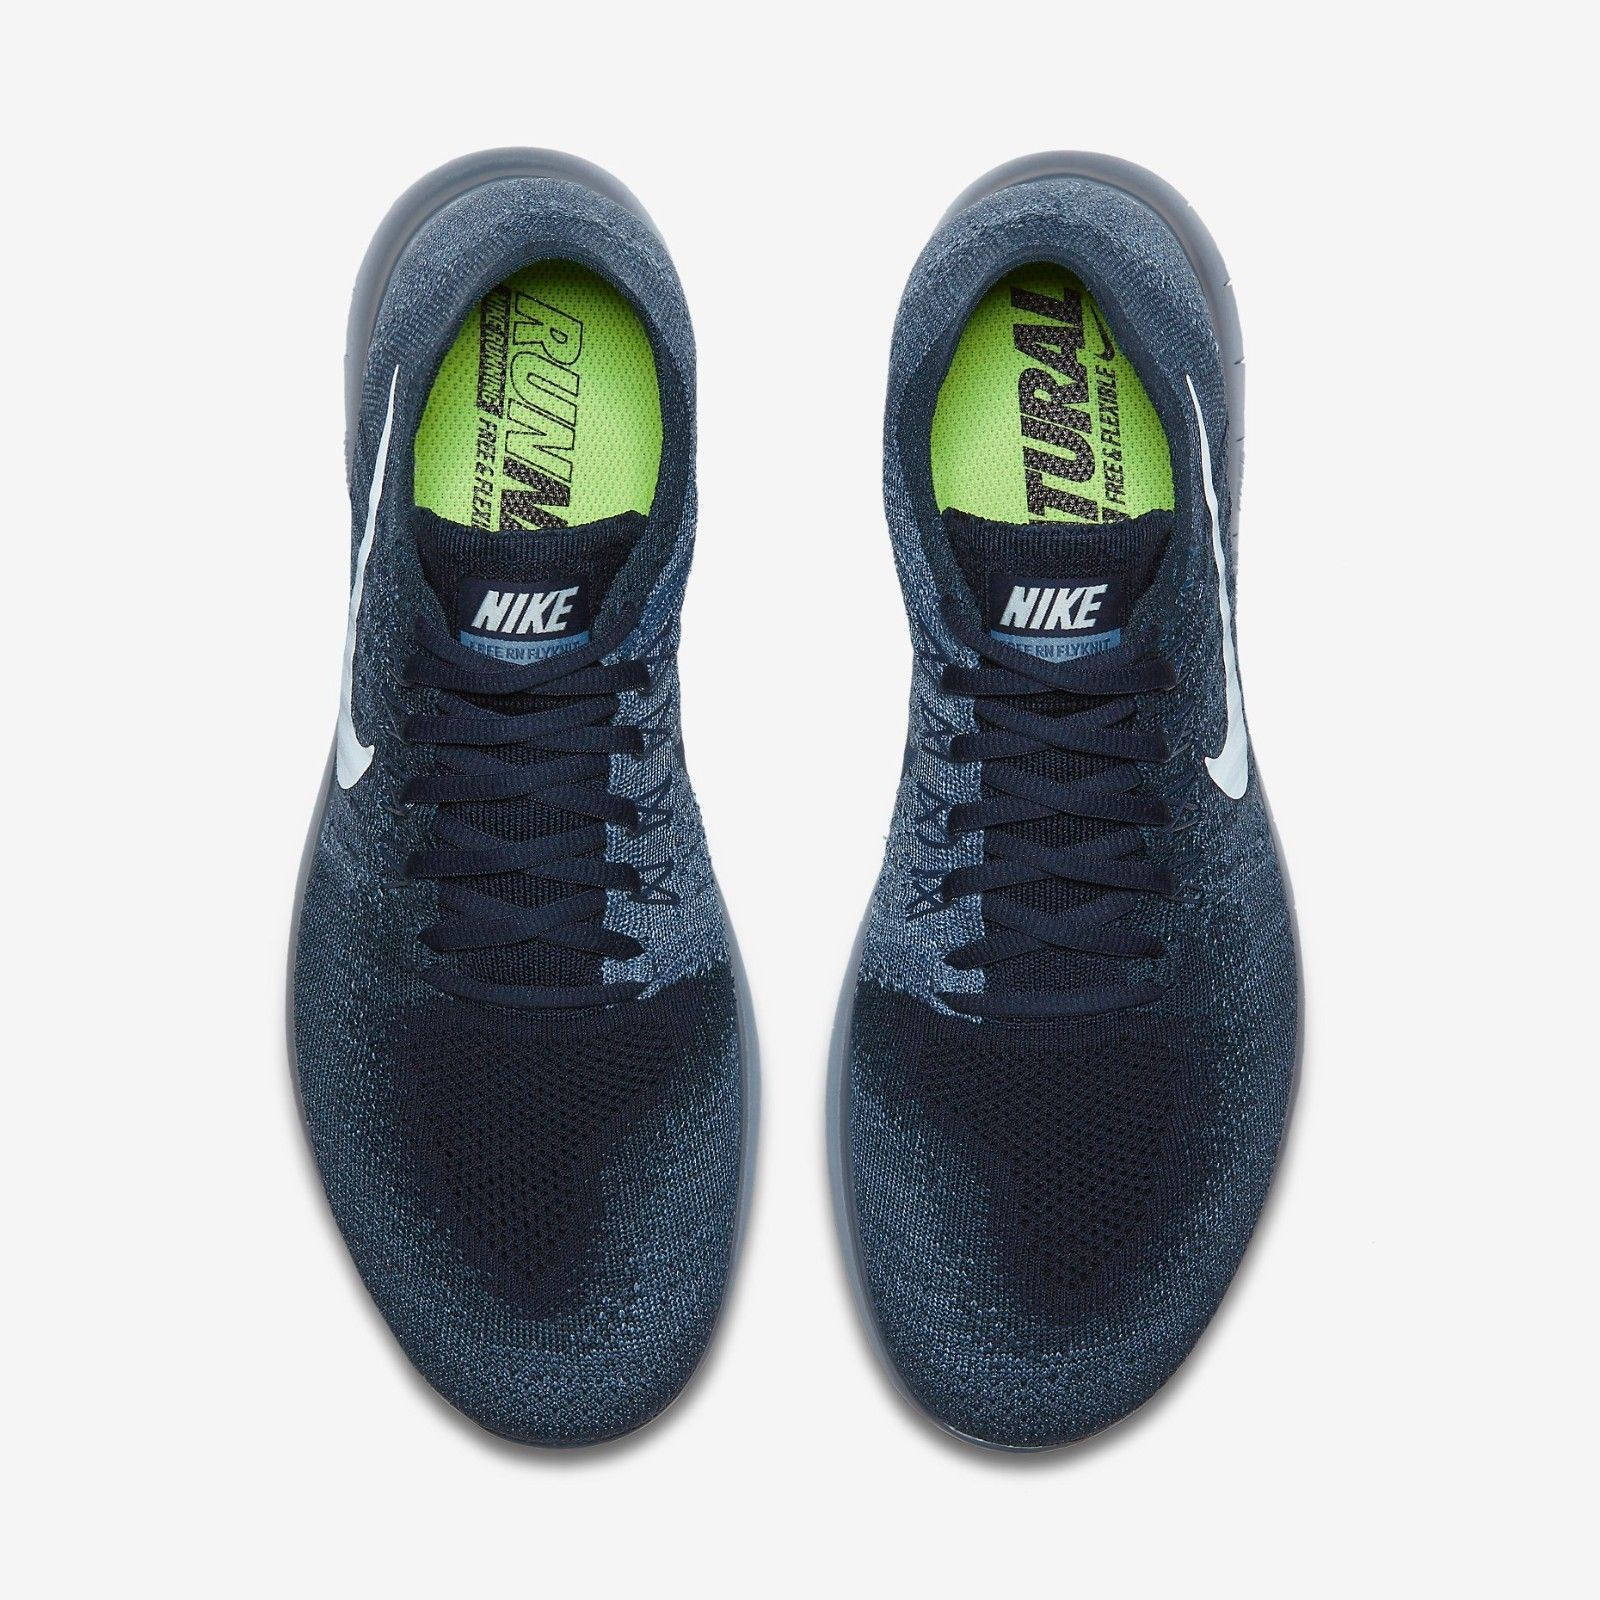 new style 98137 4ee5b Men s New Authentic Nike Free RN Flyknit 2017 Running Shoes Size 14